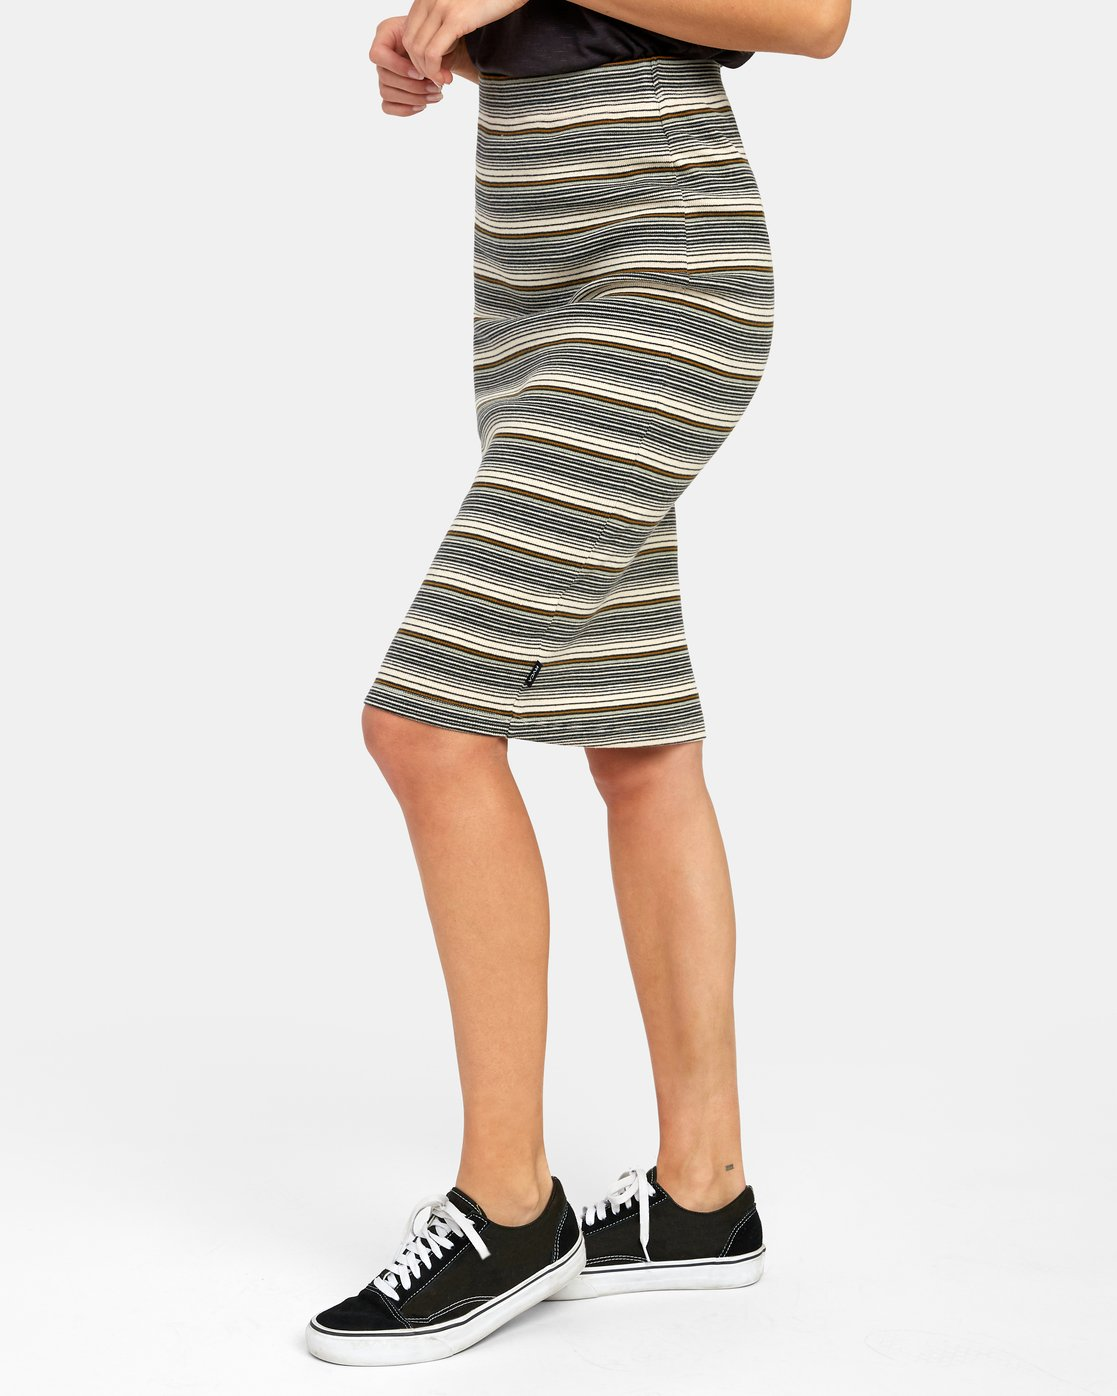 3 PICK ME UP KNIT SKIRT Brown WK021RPI RVCA